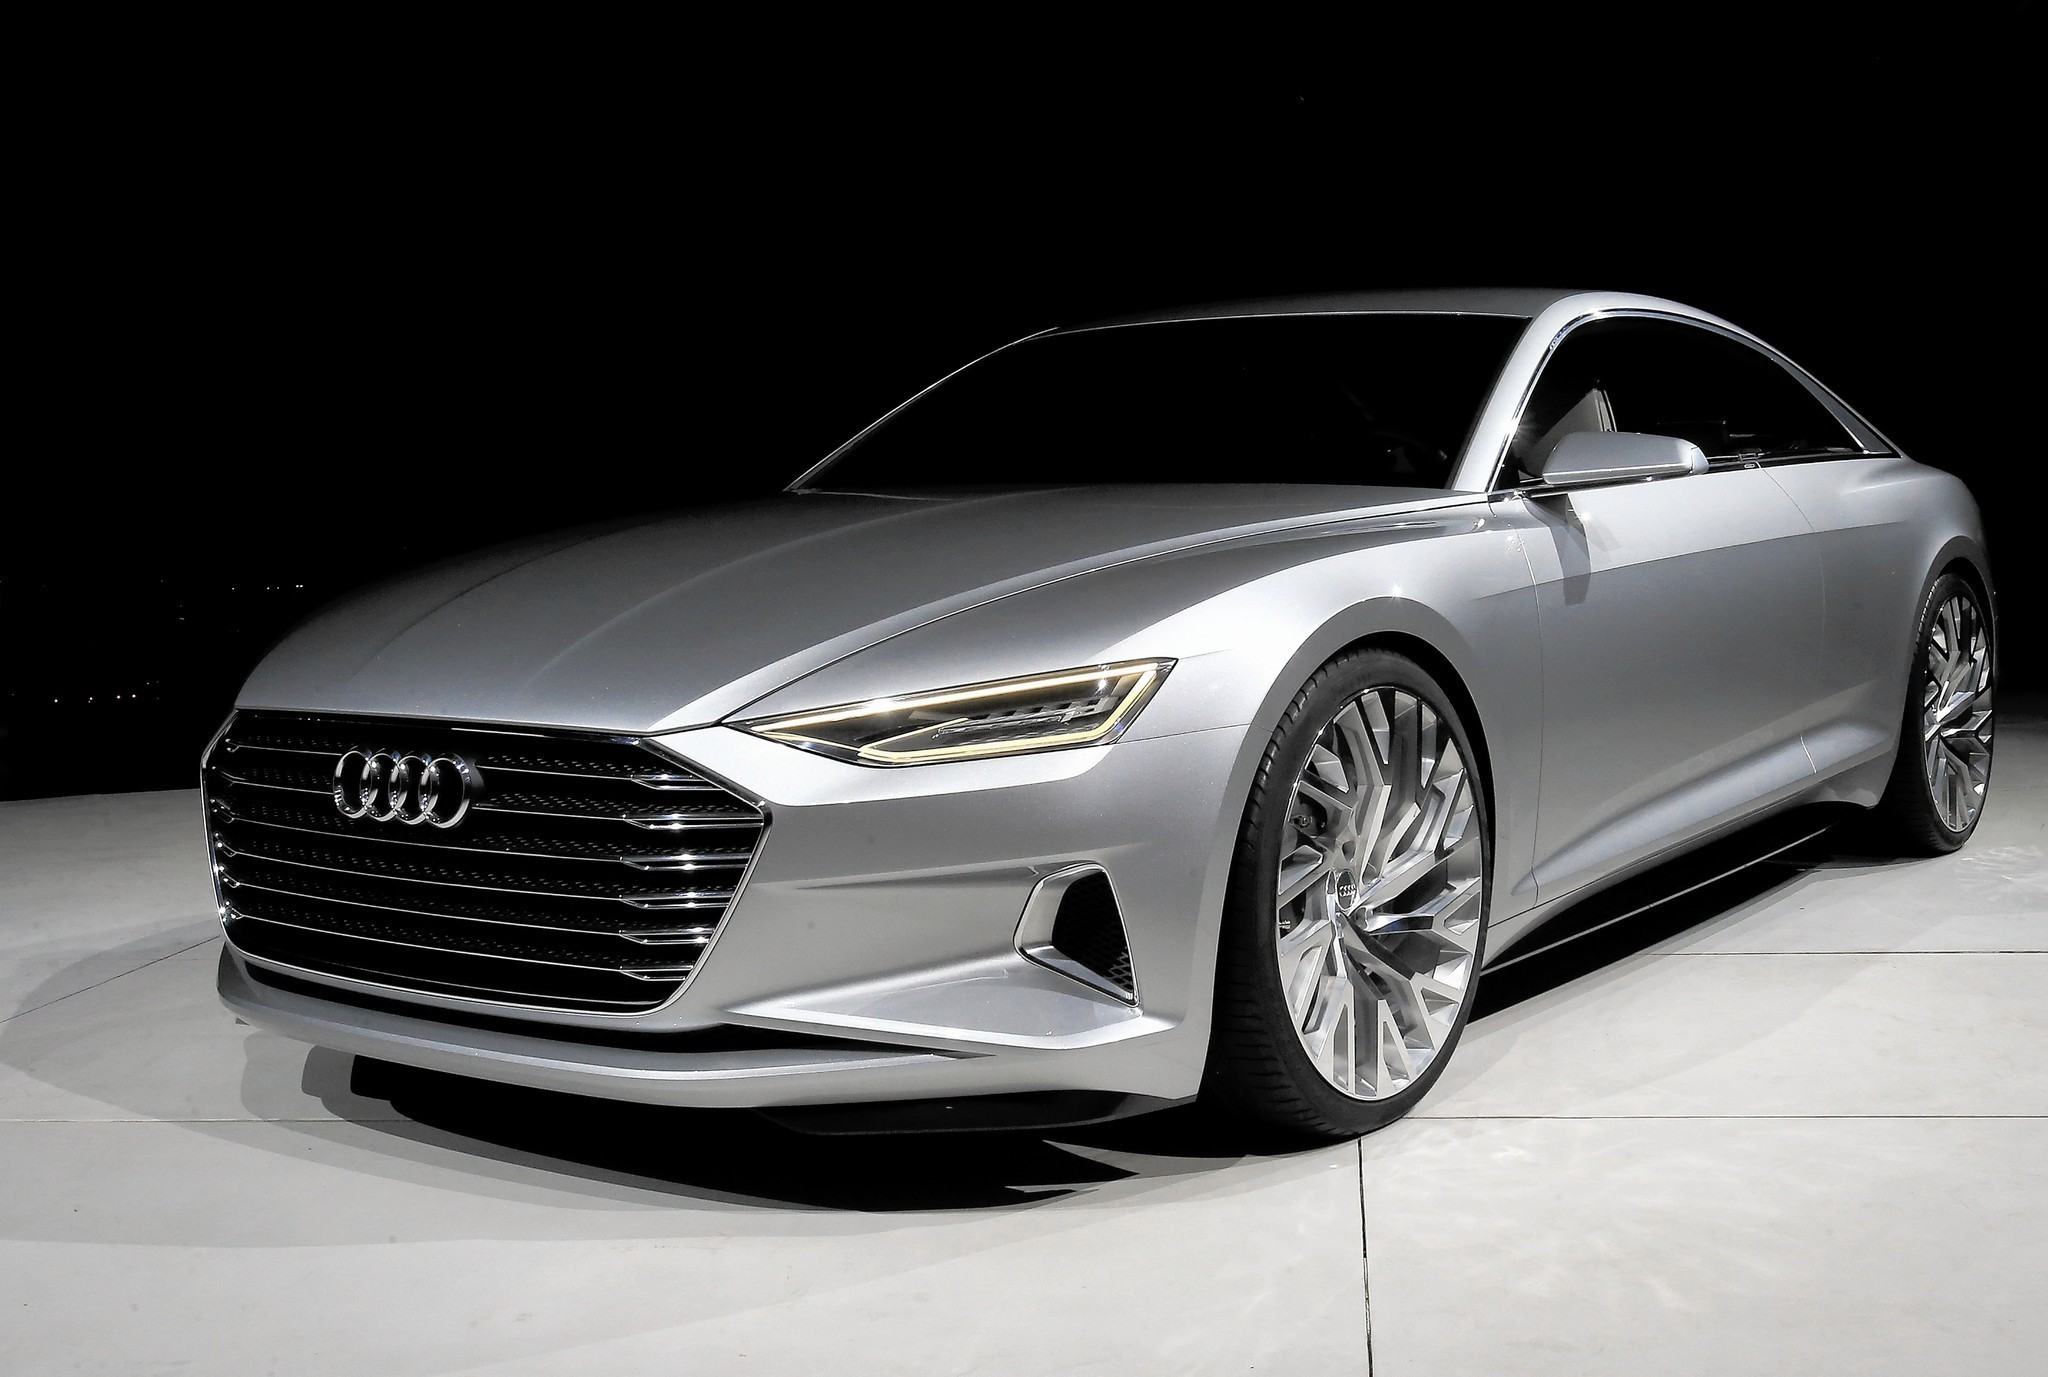 audi prologue concept car foreshadows a sultry luxurious future la times. Black Bedroom Furniture Sets. Home Design Ideas